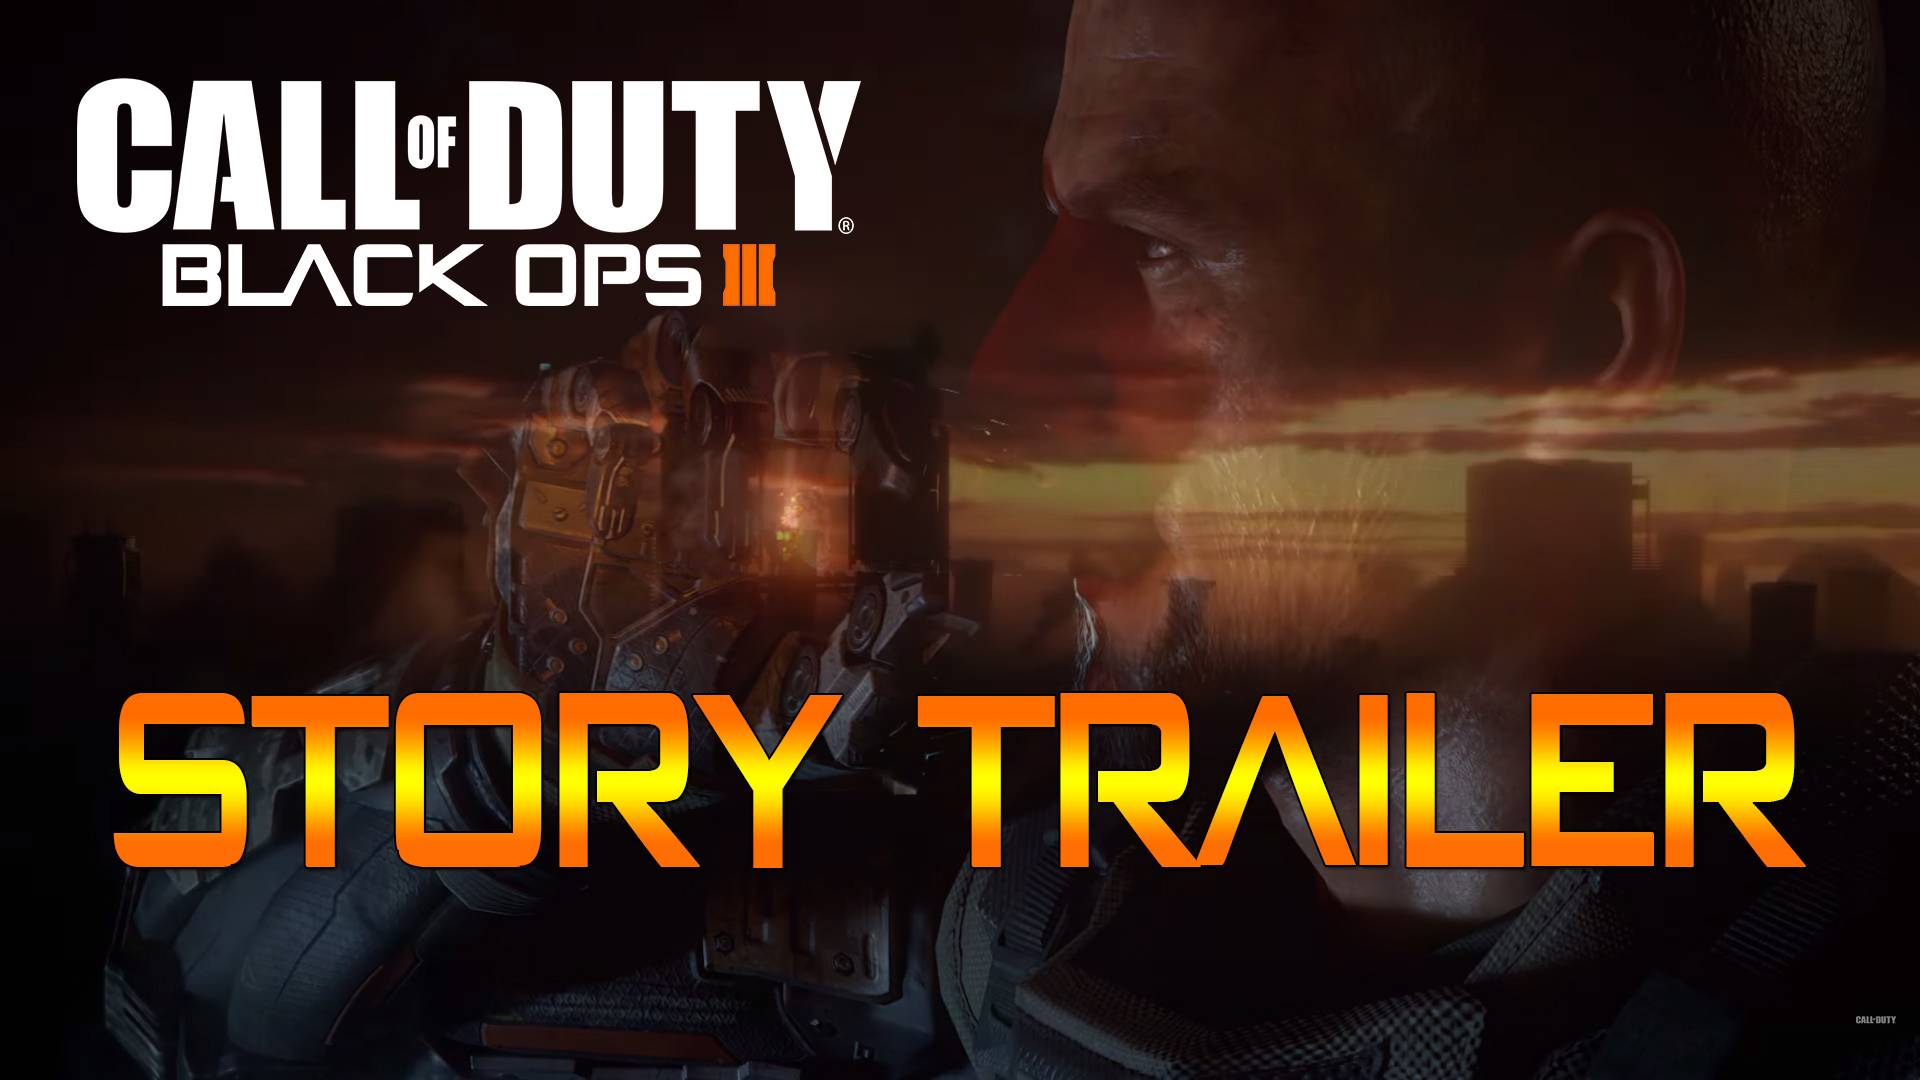 Call of duty 1 patch 15 free download